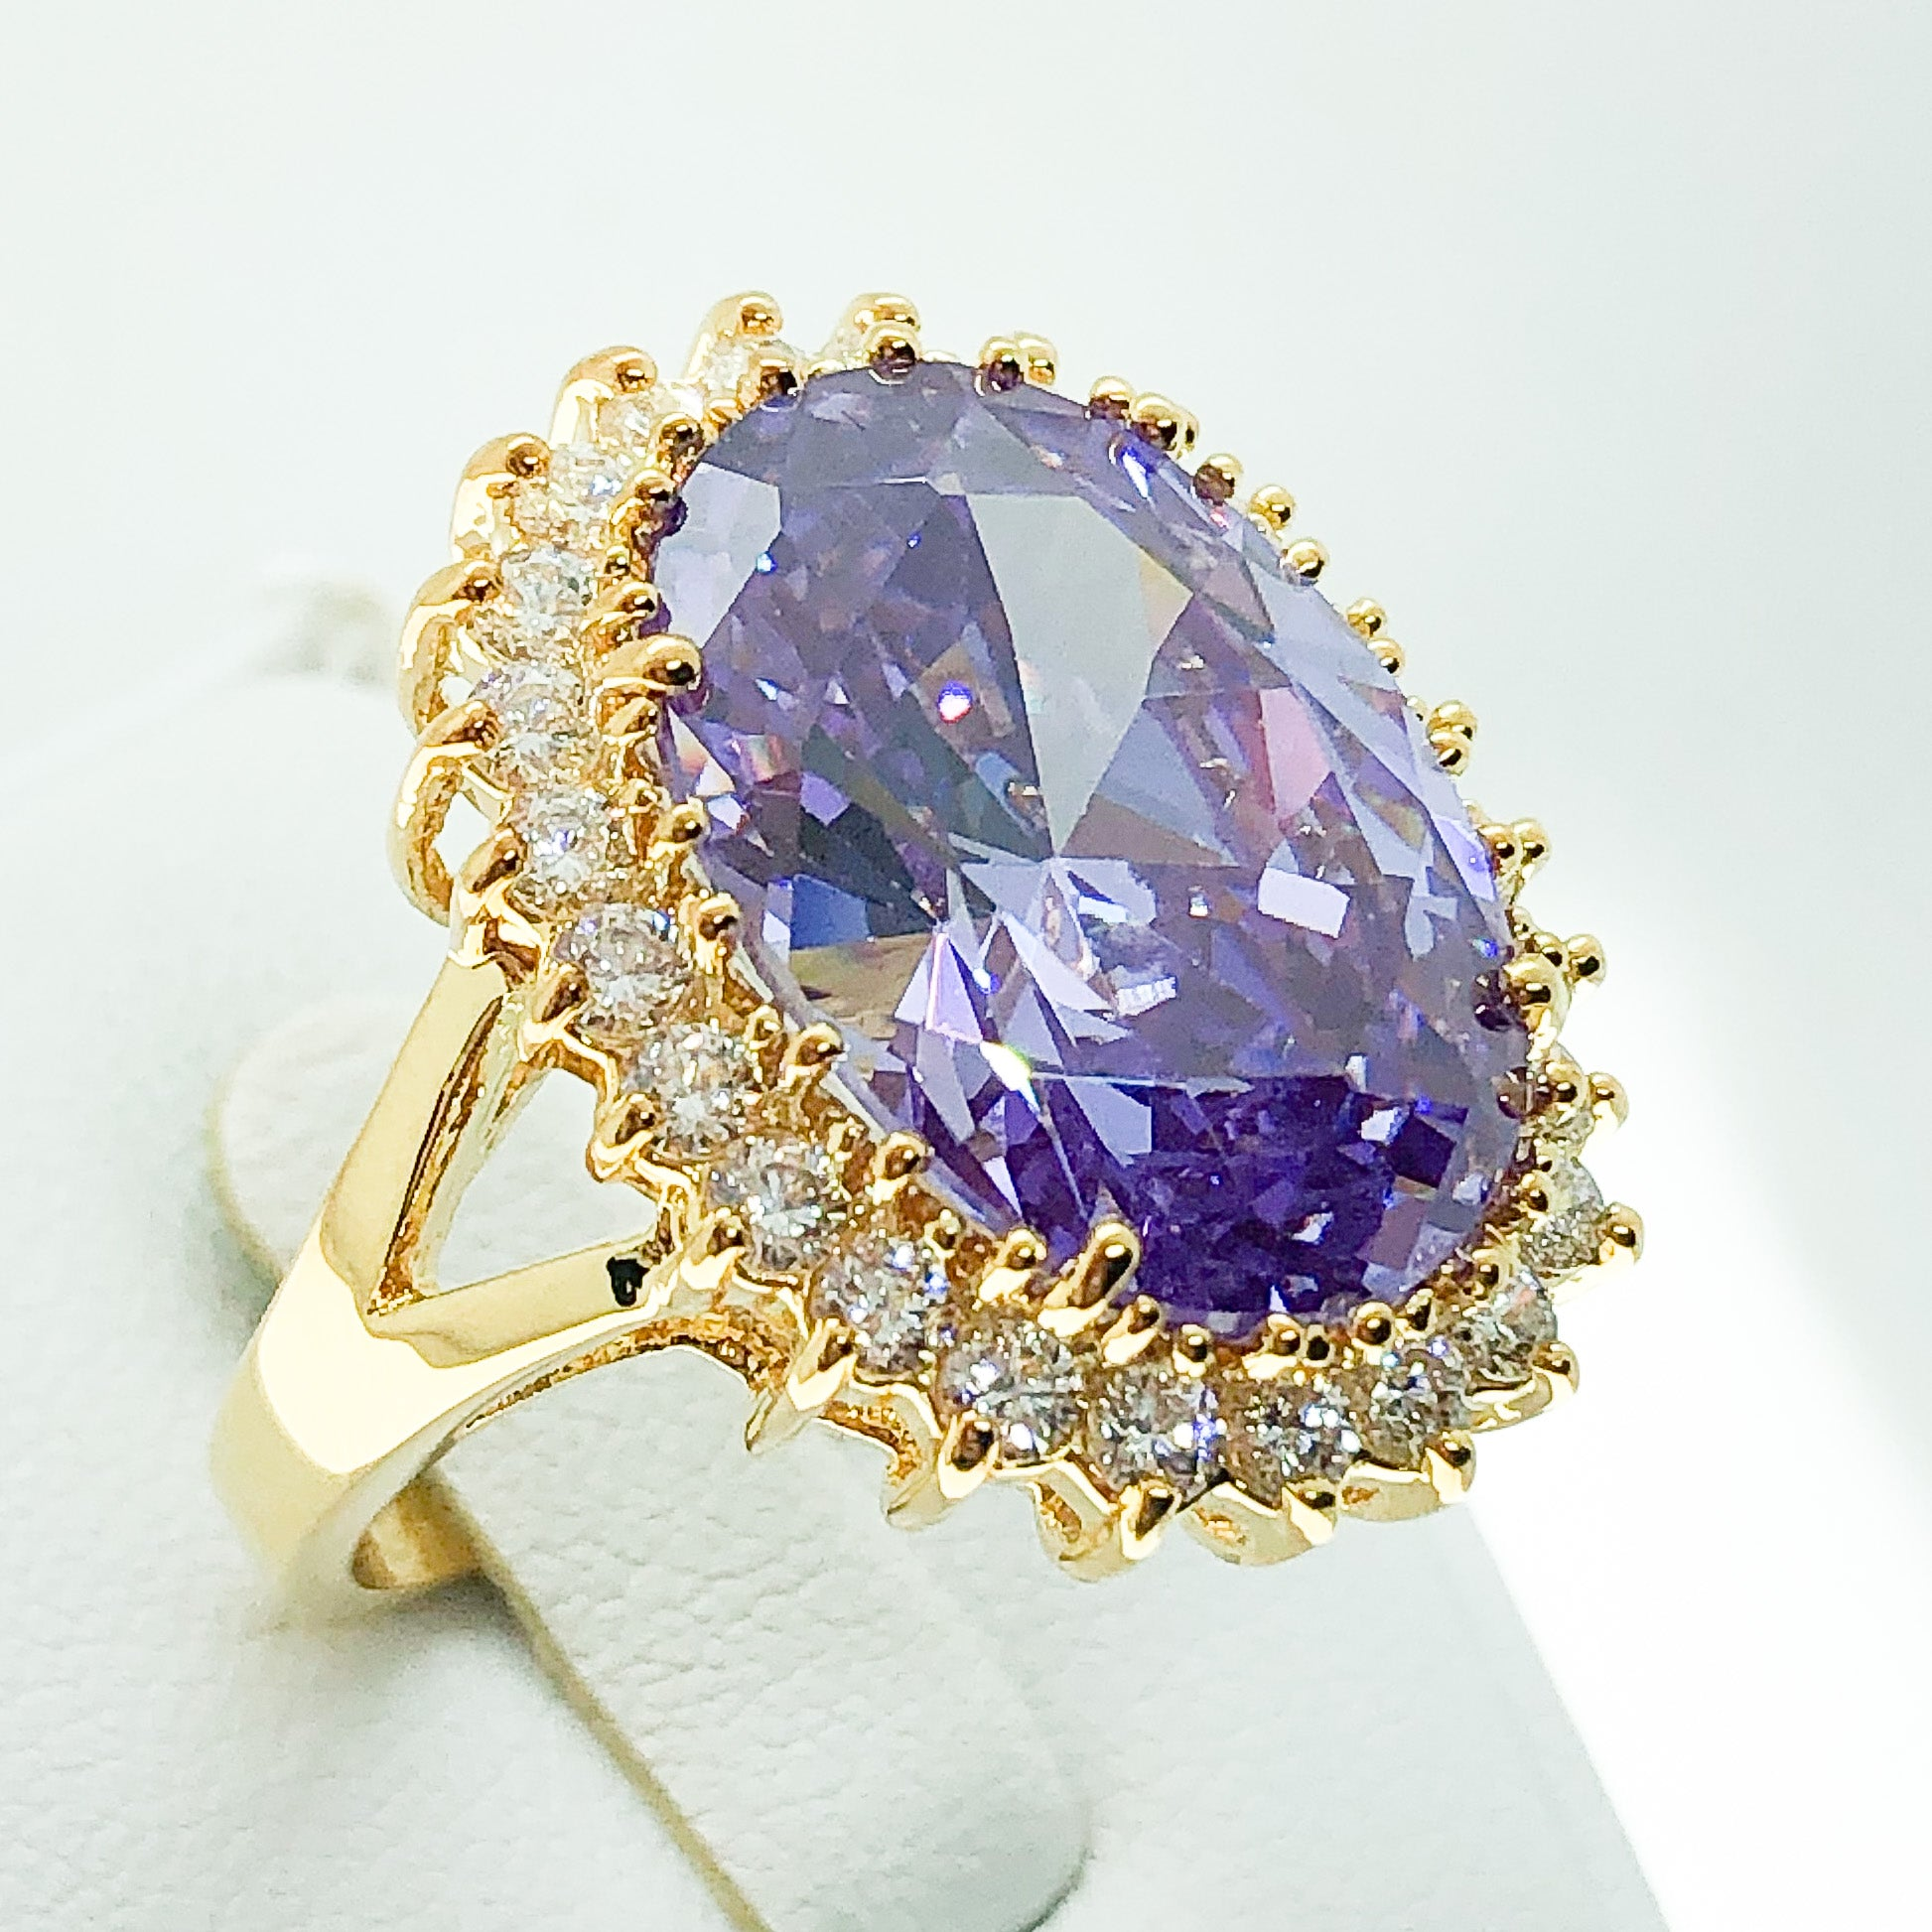 ID:R4089 Women Vintage Jewelry 18K Yellow Gold GF Big Oval Amethyst Cluster Cocktail Ring Anniversary Gift